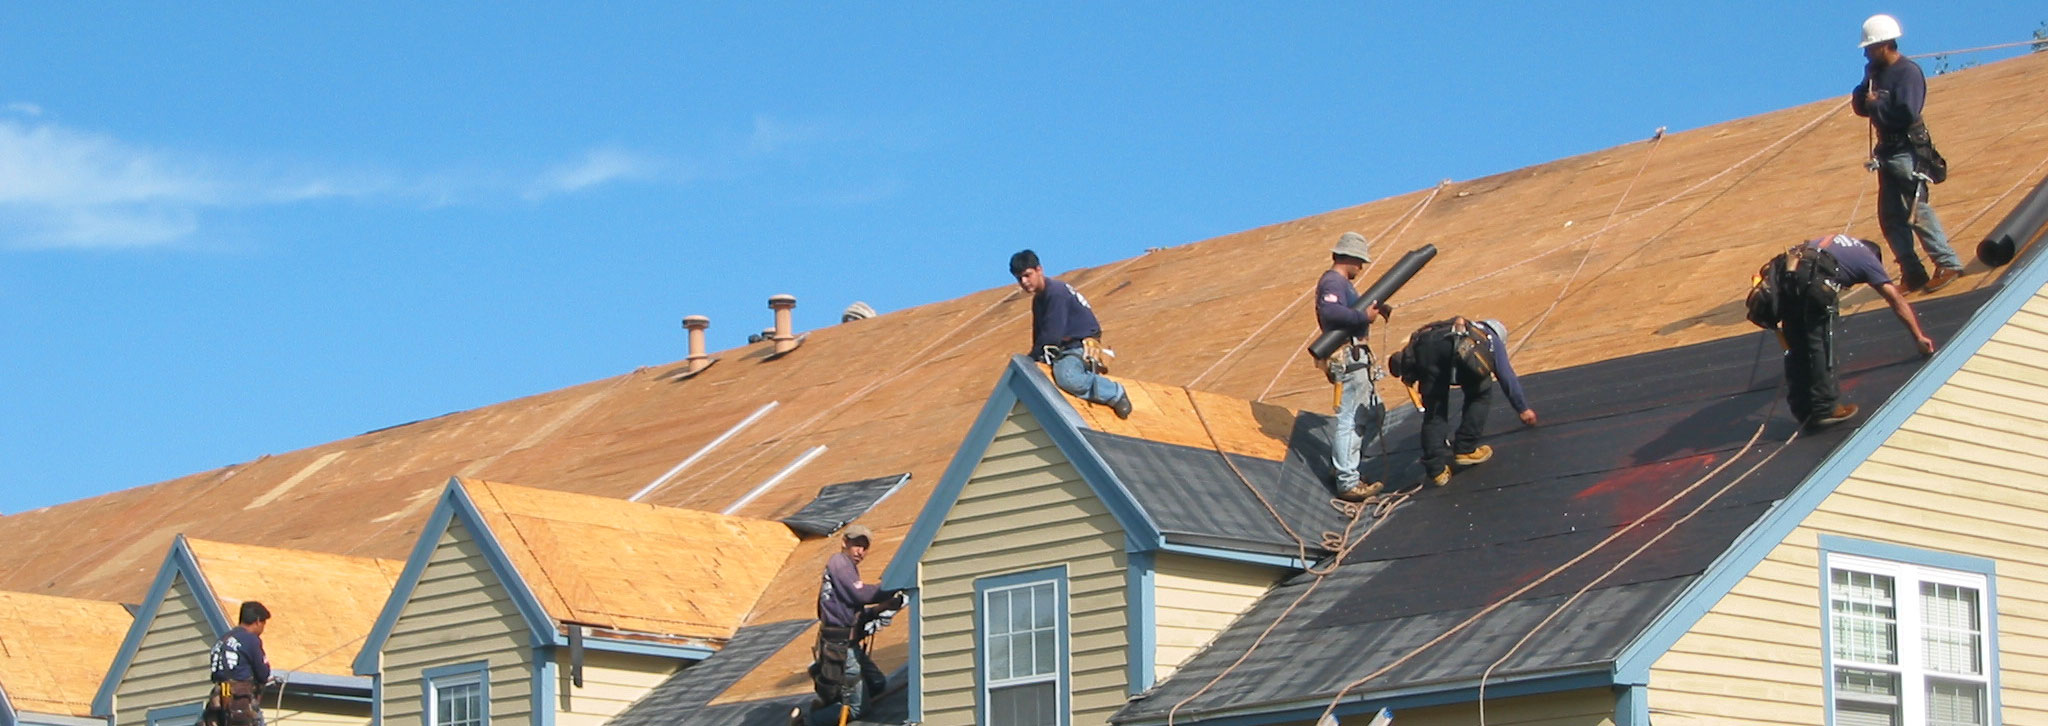 Roofing Contractors Association Of Minnesota